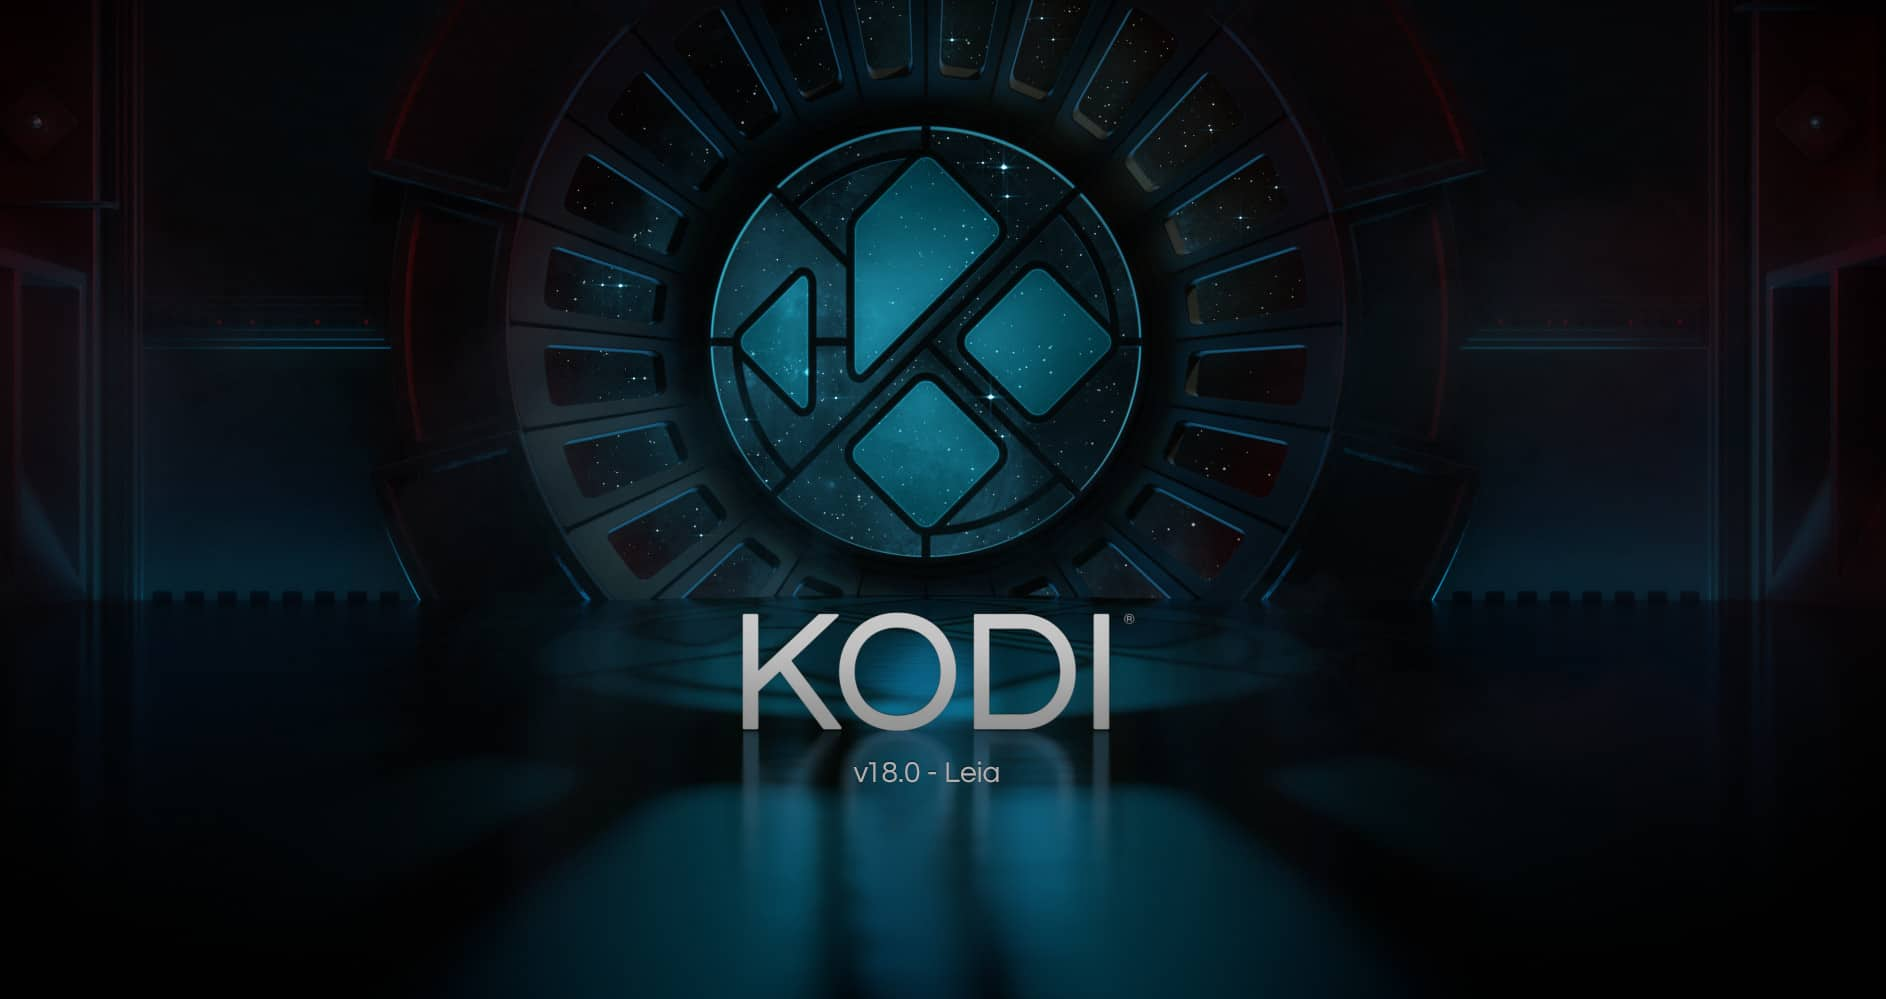 How to Install Kodi 18 Leia on Android TV Box - The VPN Guru